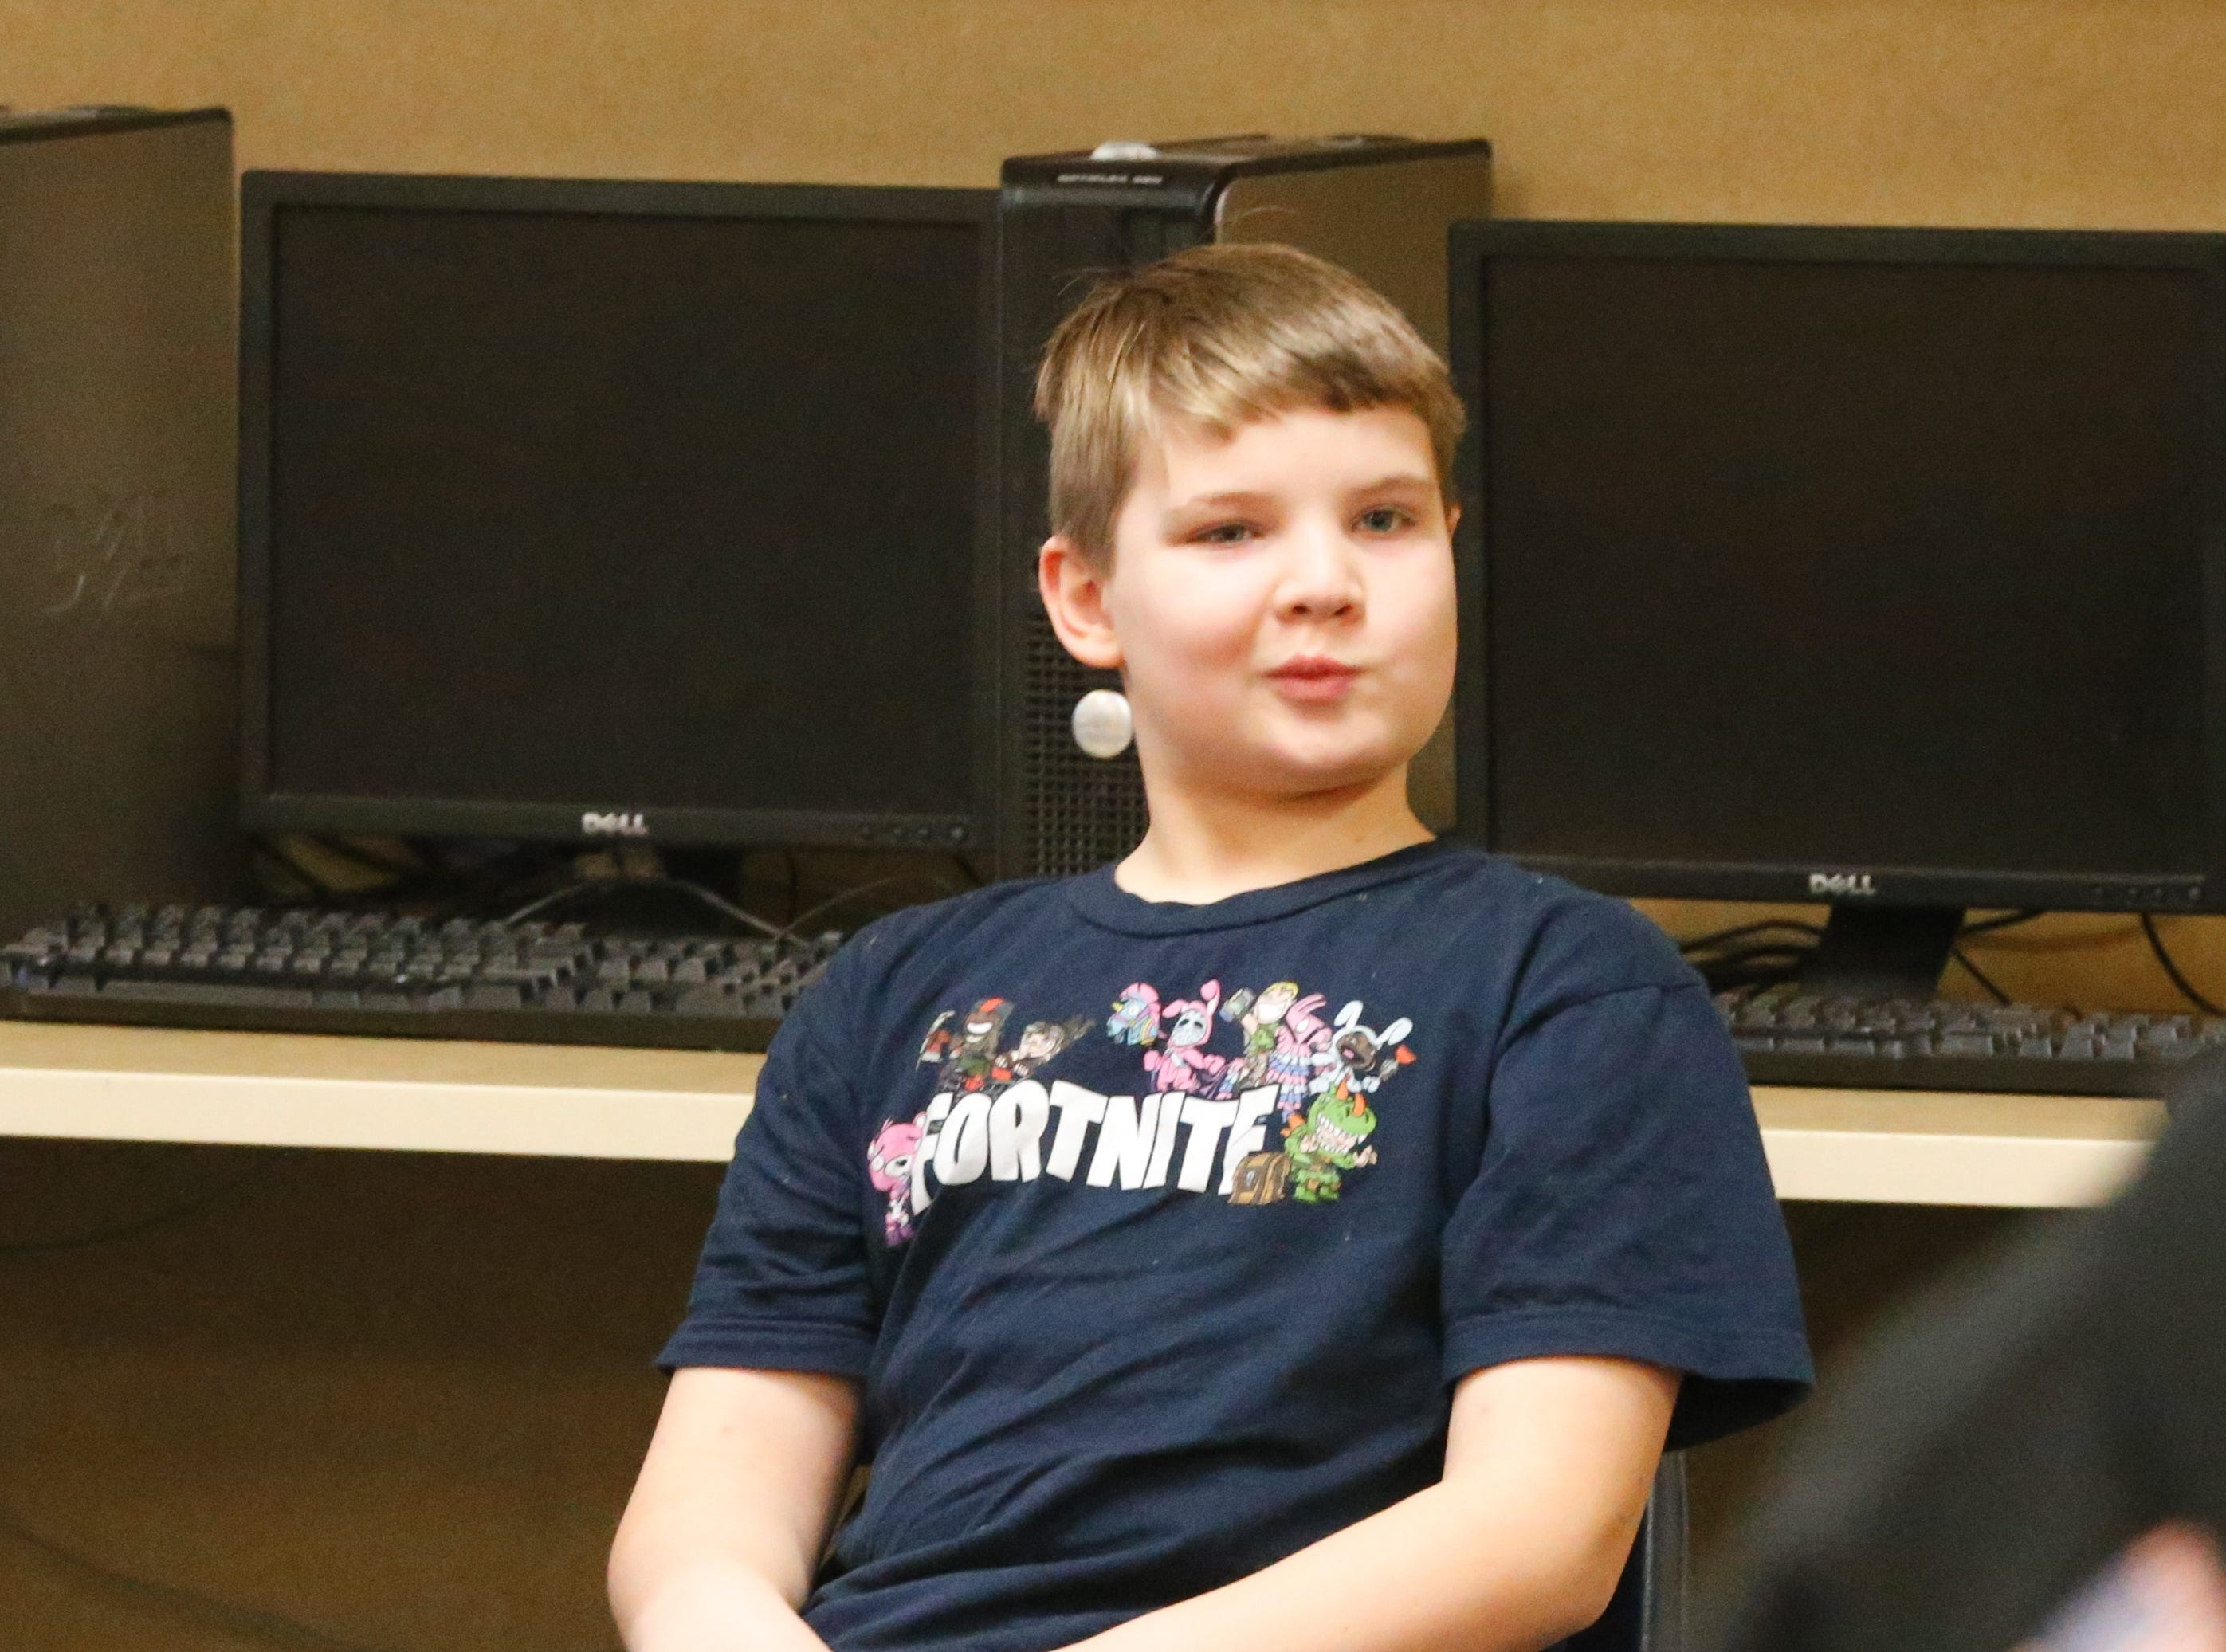 Joshua Idle, a fourth-grader at Fairview Elementary School in Richmond, listens as his teacher, Jim Jeffries makes an announcement. Idle and his younger brother, Ryan, were surprised with an Xbox One S by classmates Javeonte Johnson and D. J. Allen, who founded the 'Josh Squad,' a store that sold pictures to raise money for Idle. Idle was involved in an accident and lost his mom in Dec. 2018.